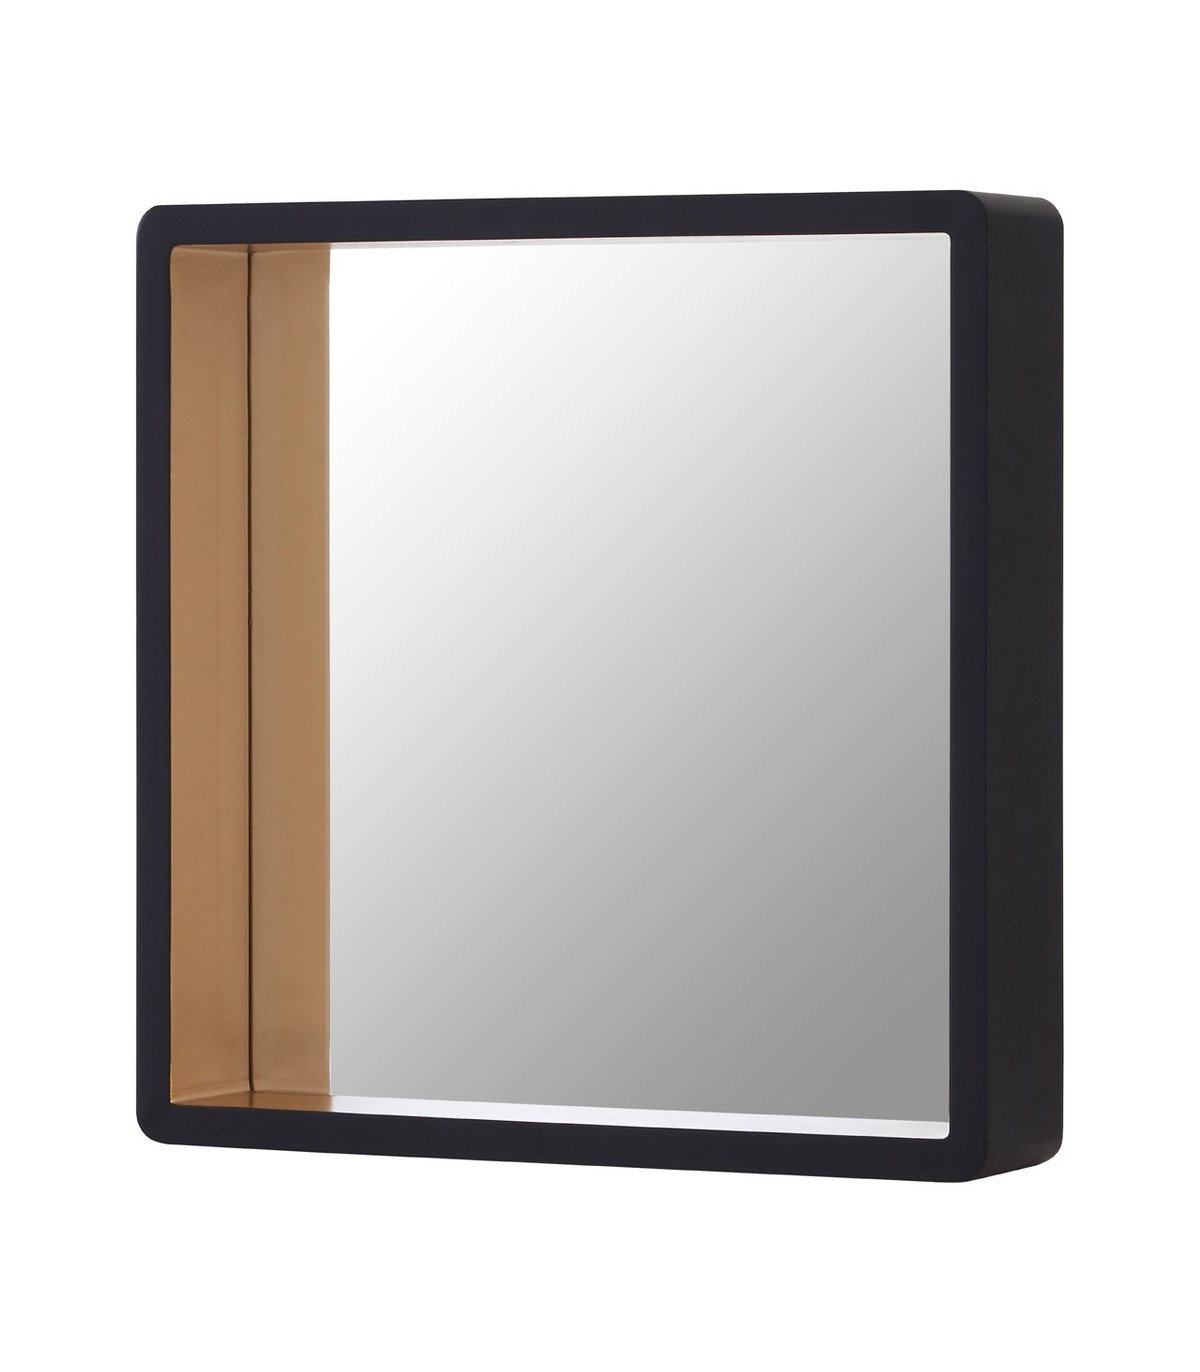 Large Black Wall Mirrors Regarding 2019 Large Black Wall Mirror With Gold Edge (View 14 of 20)